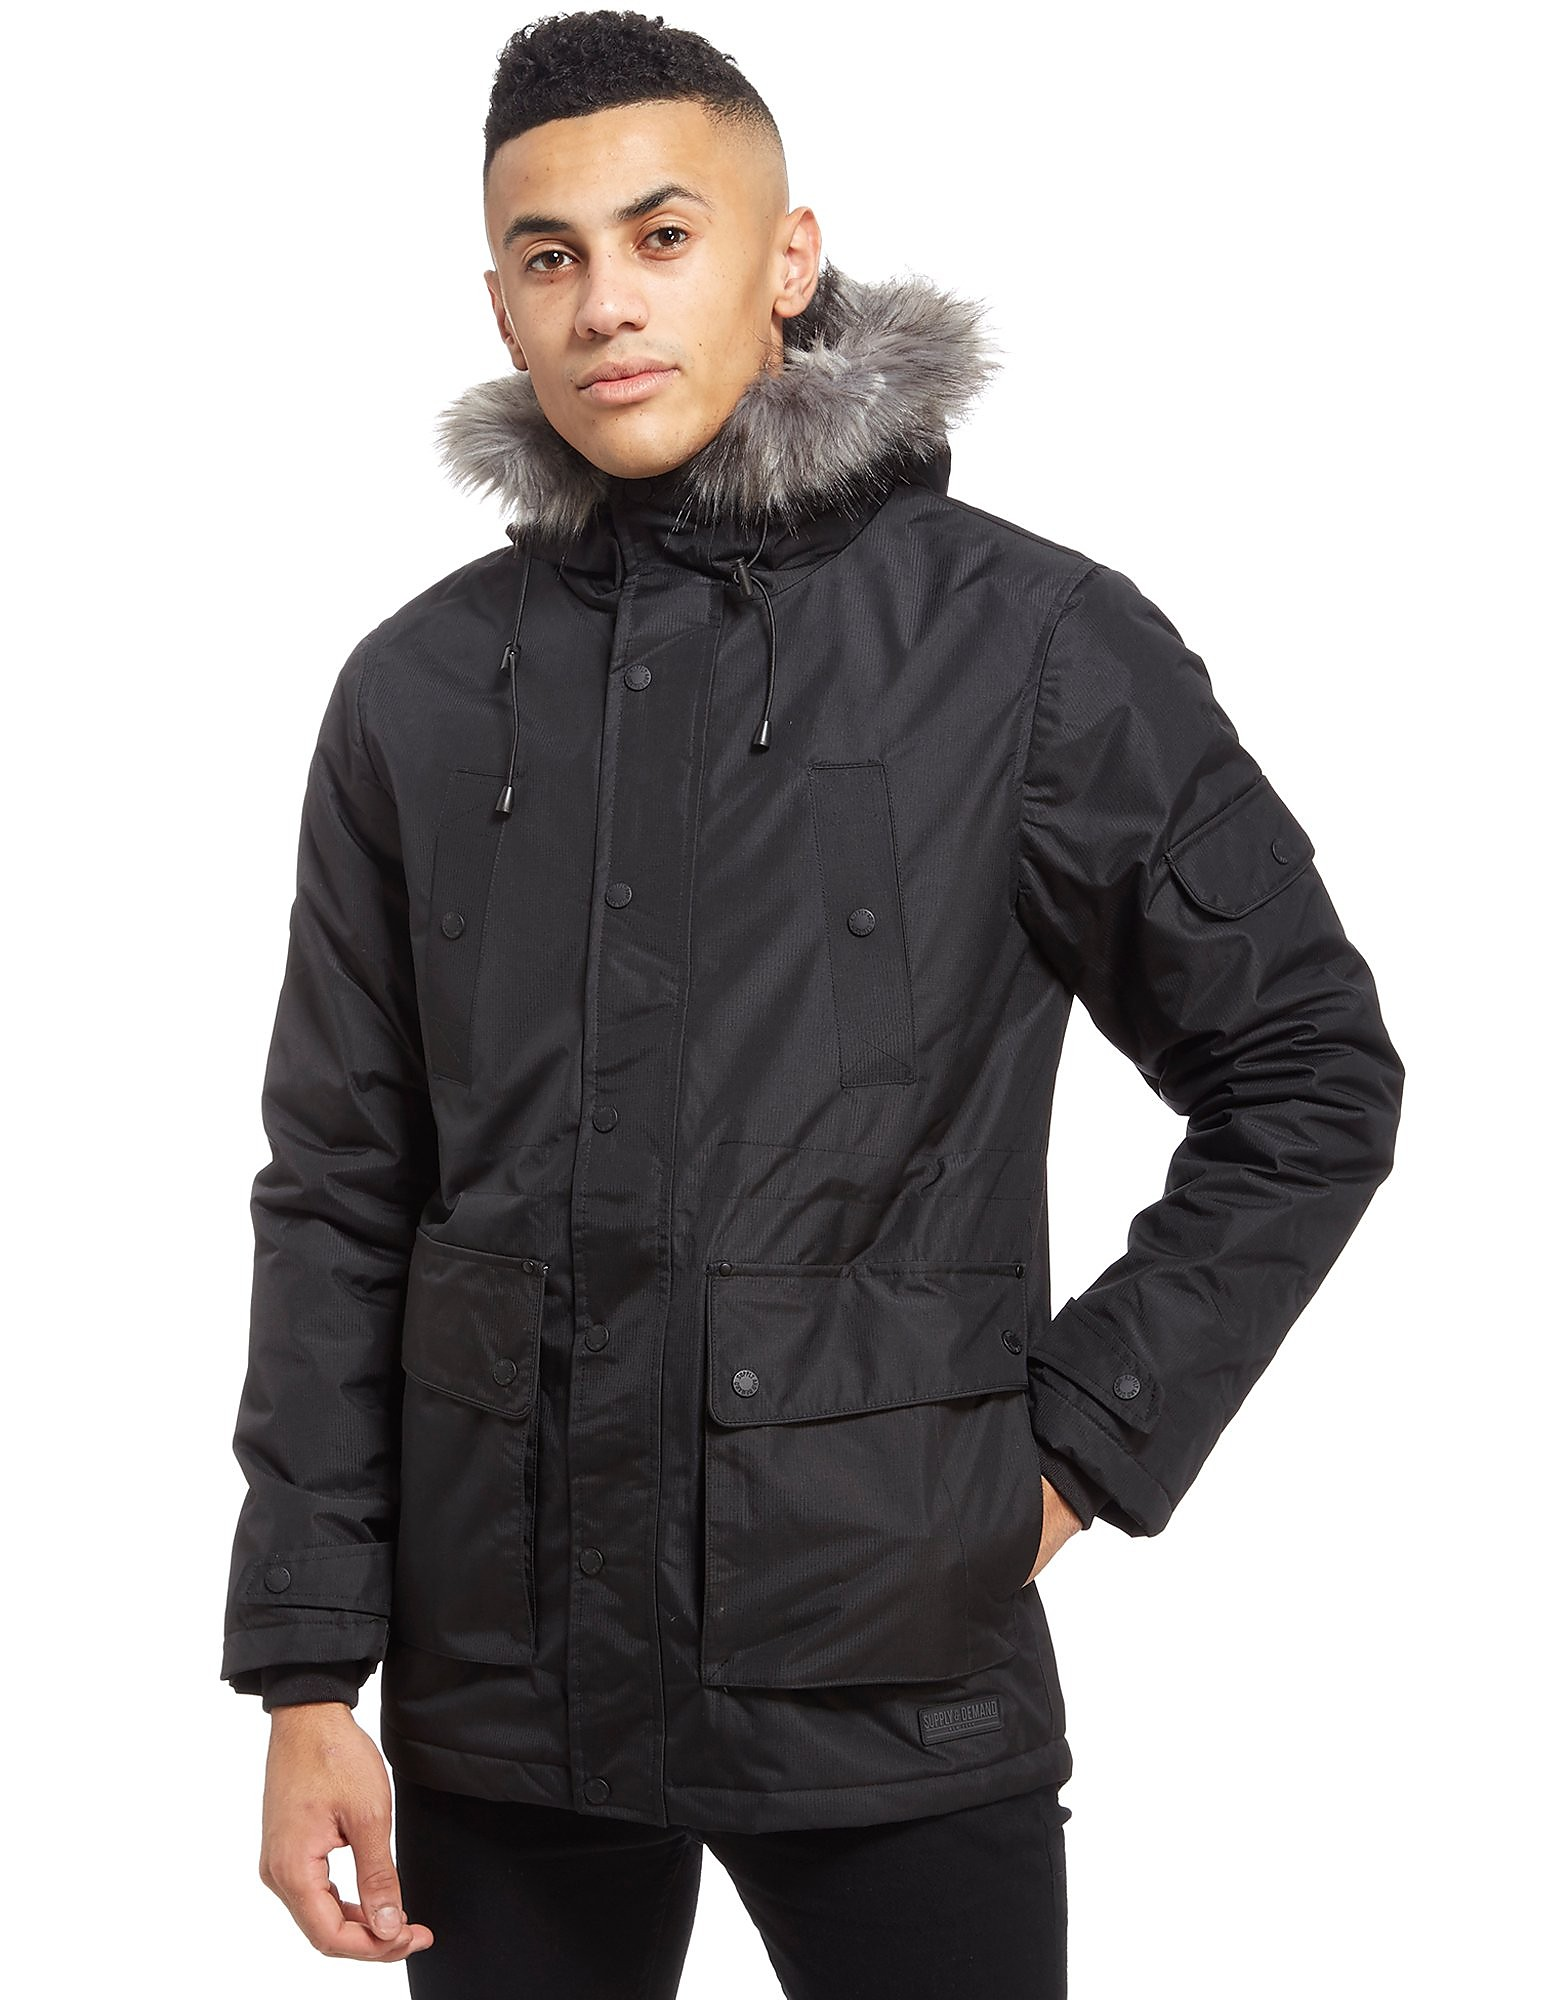 Supply & Demand Zeus Parka Jacket